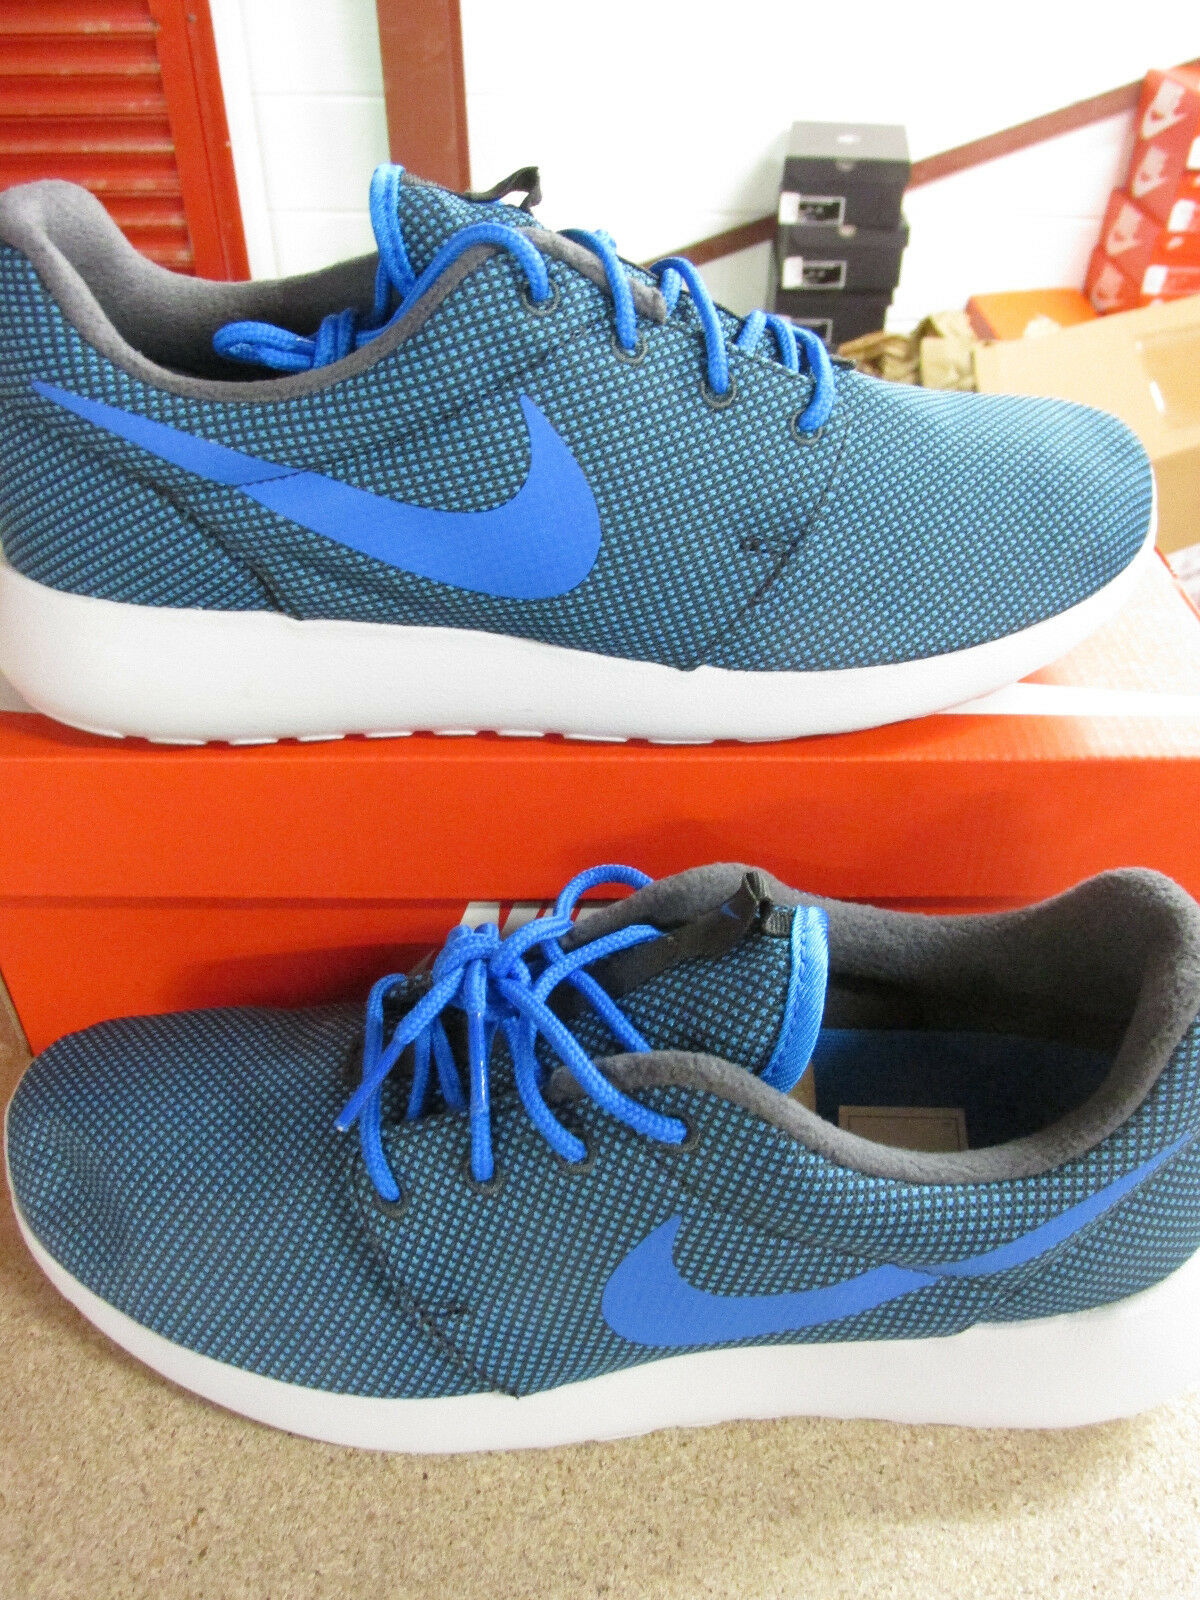 nike one roshe one nike premium homme  running trainers 525234 040 Baskets  chaussures 439cf9